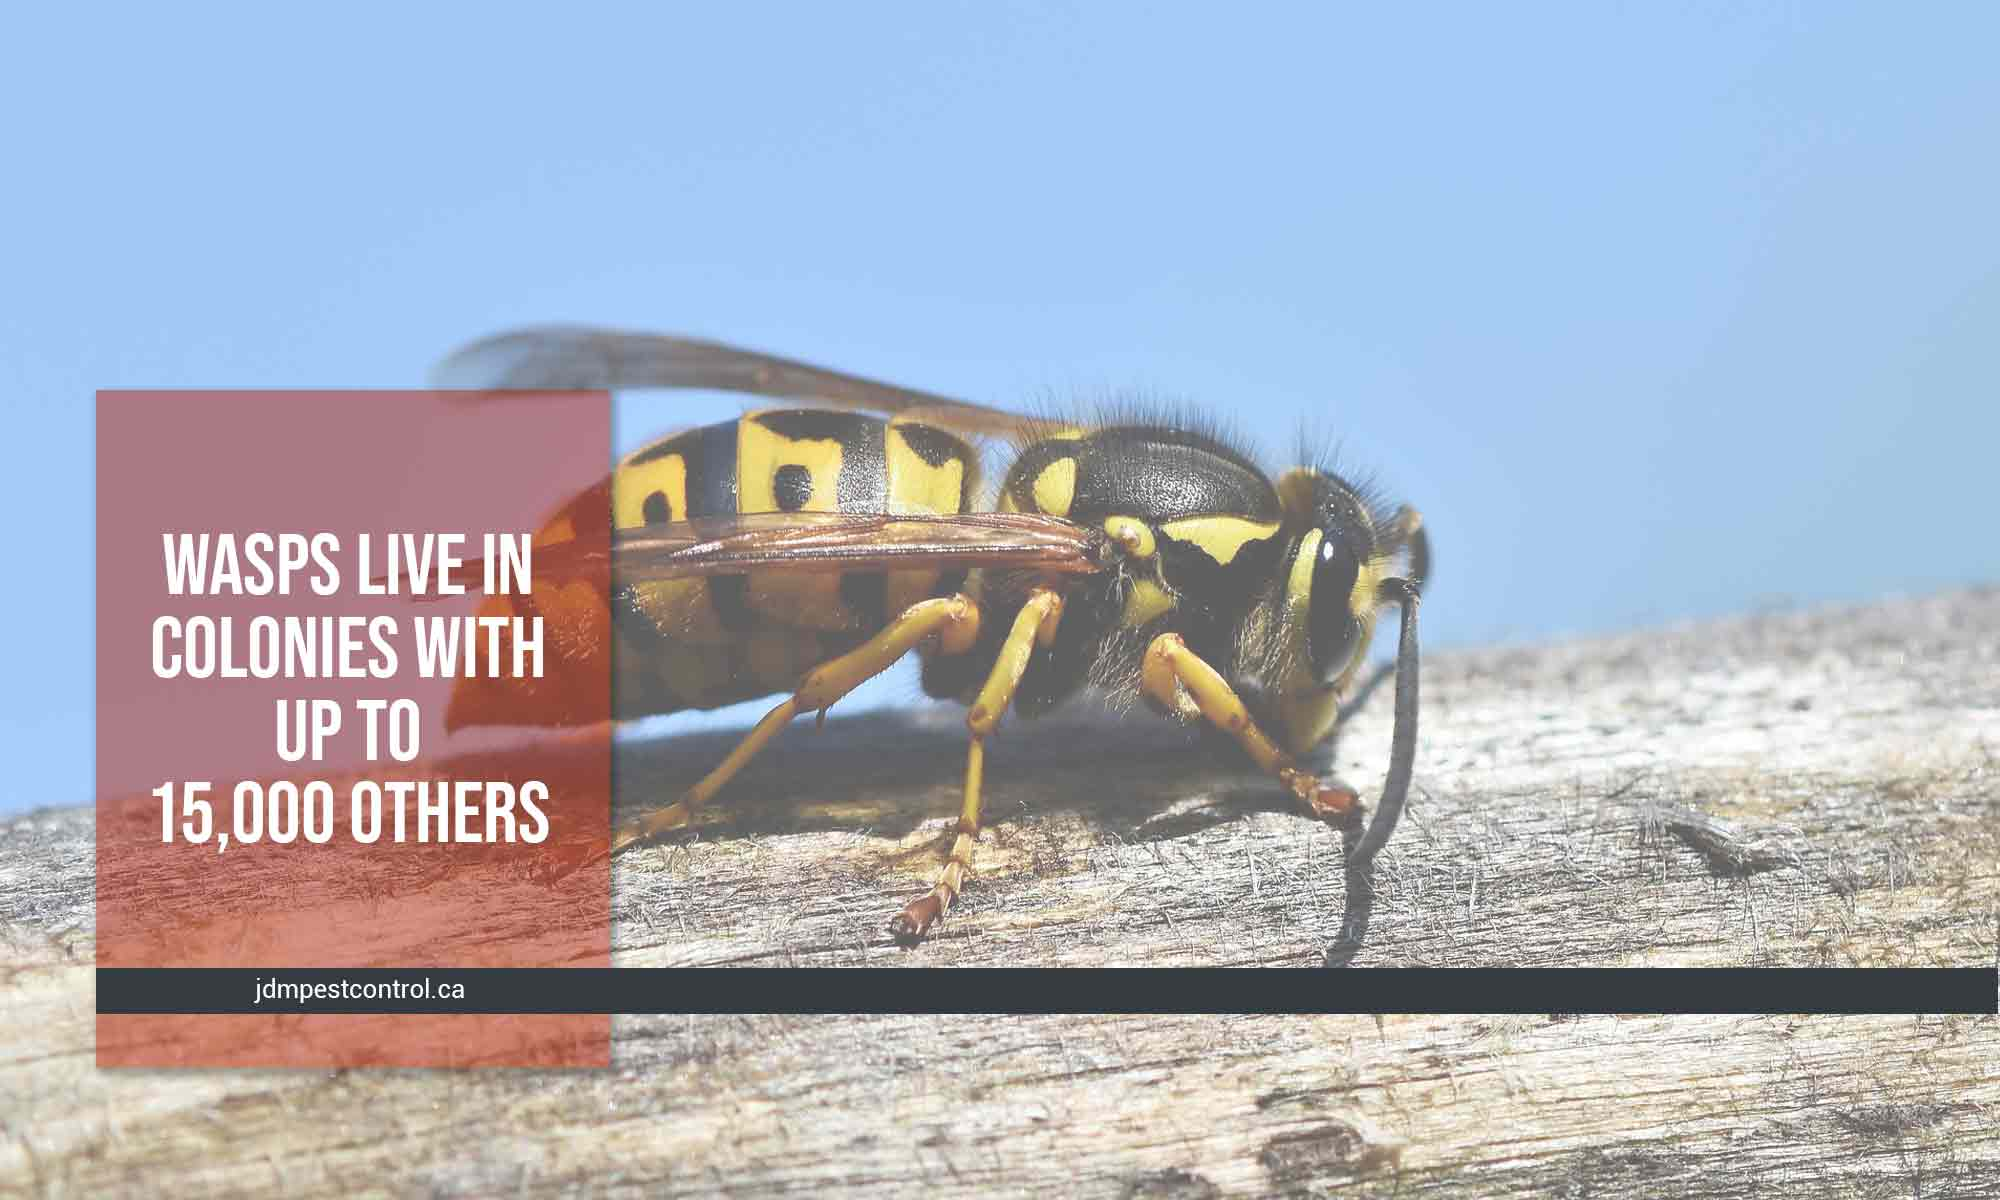 wasps live in colonies